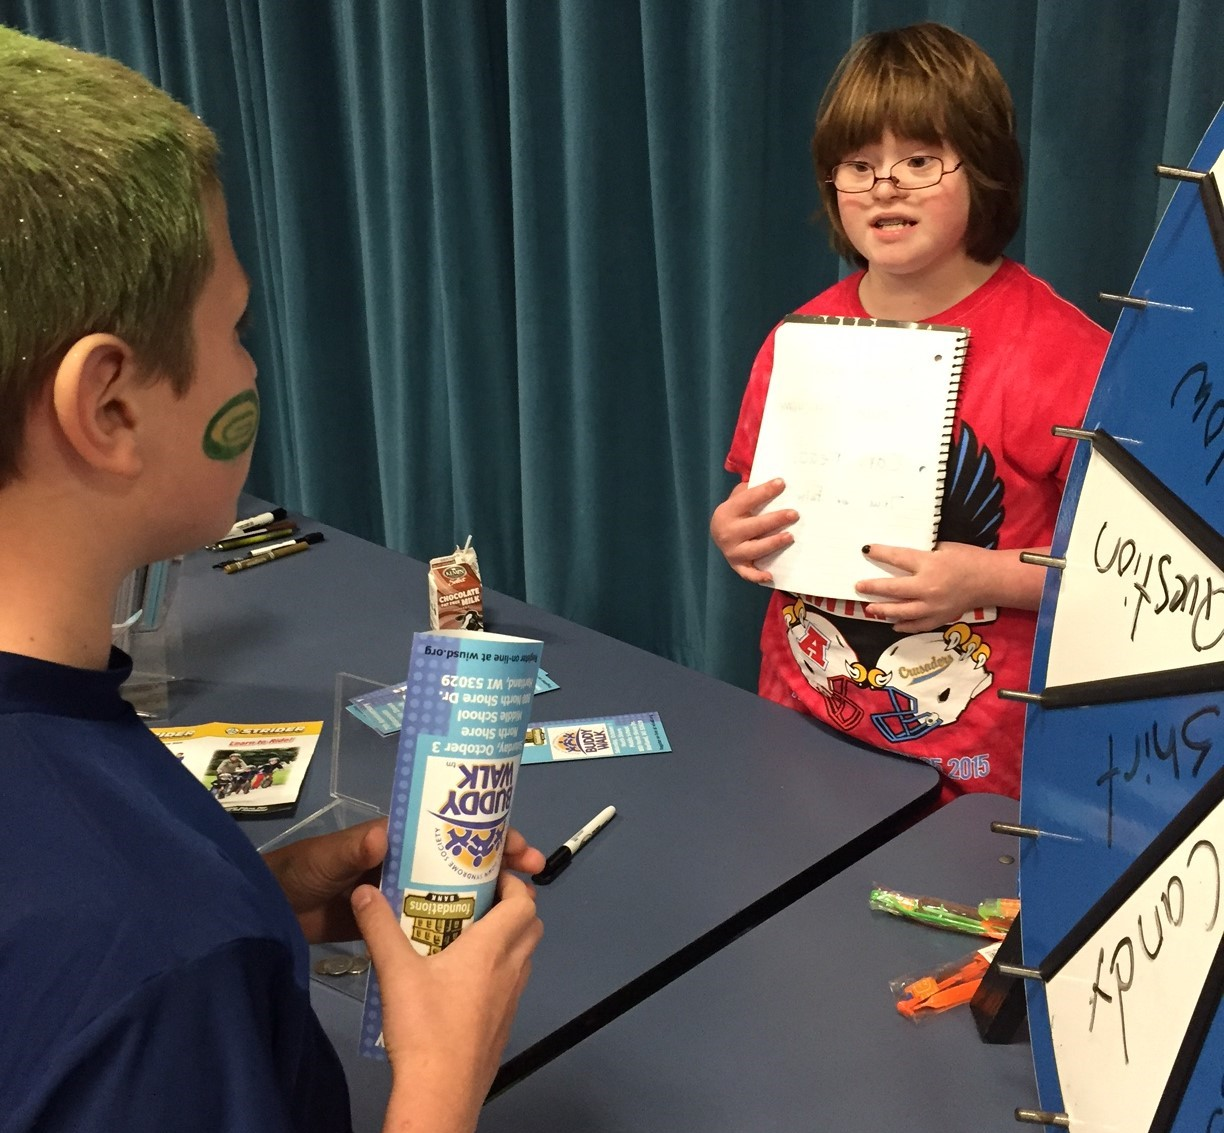 Students learn about Down syndrome